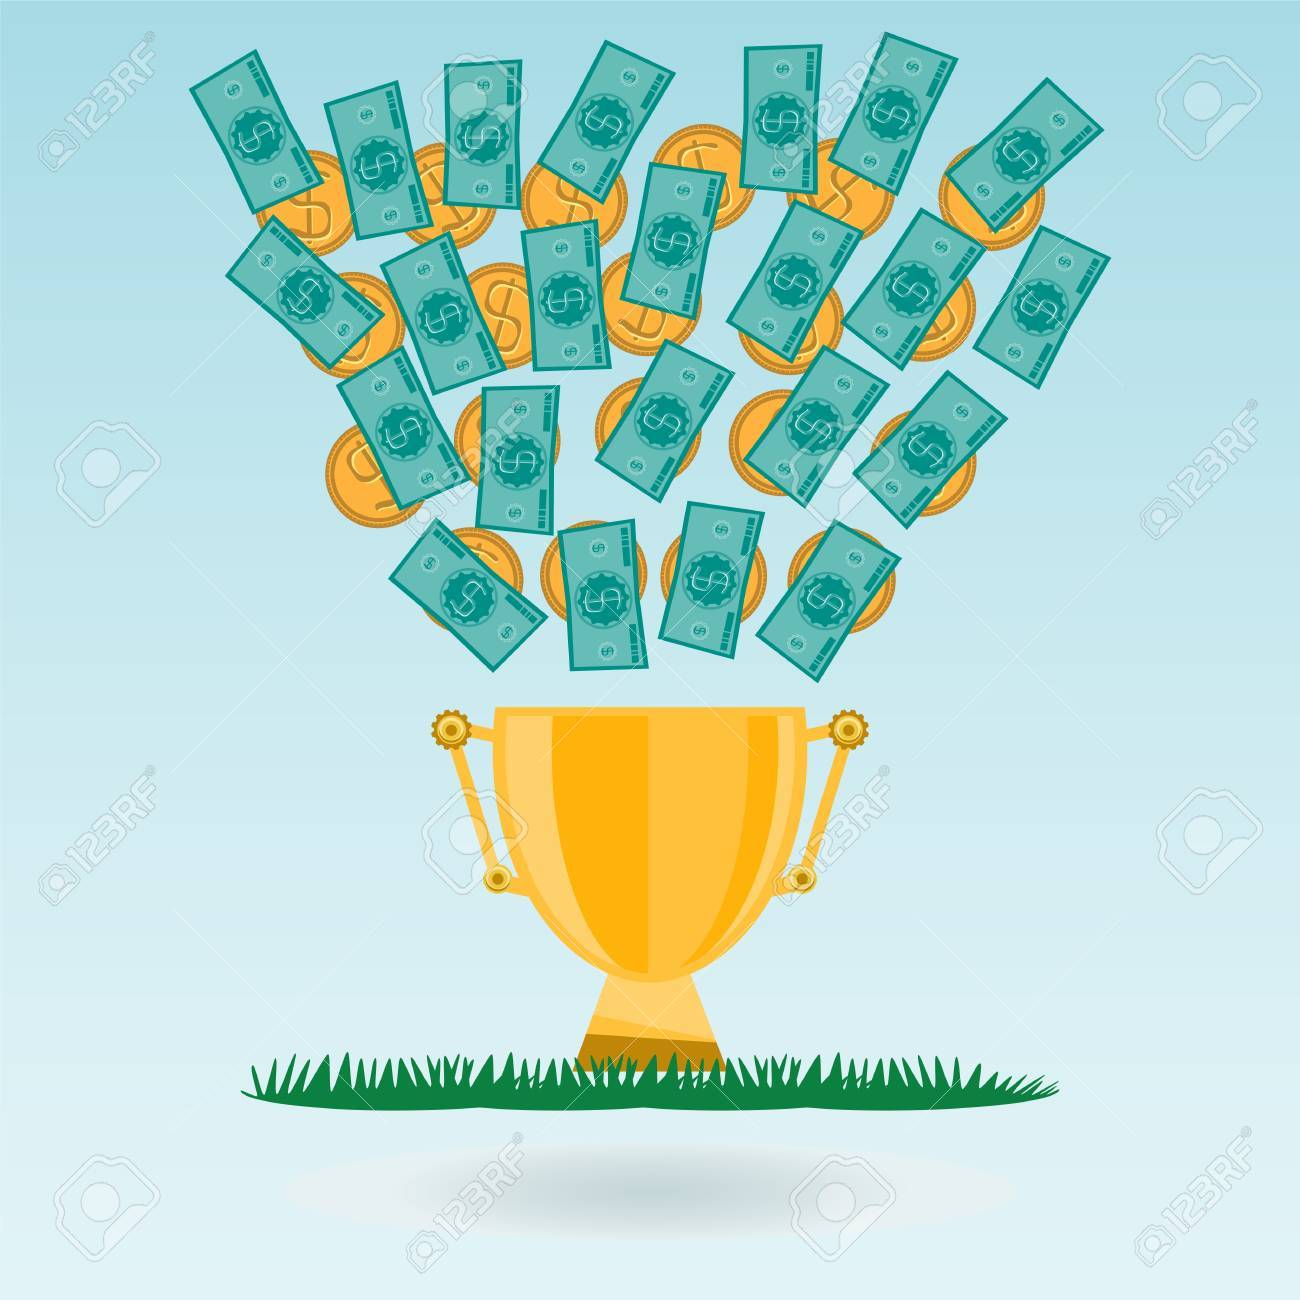 hight resolution of dollar banknotes and coins flying in a golden trophy cup green grass cash expenditure